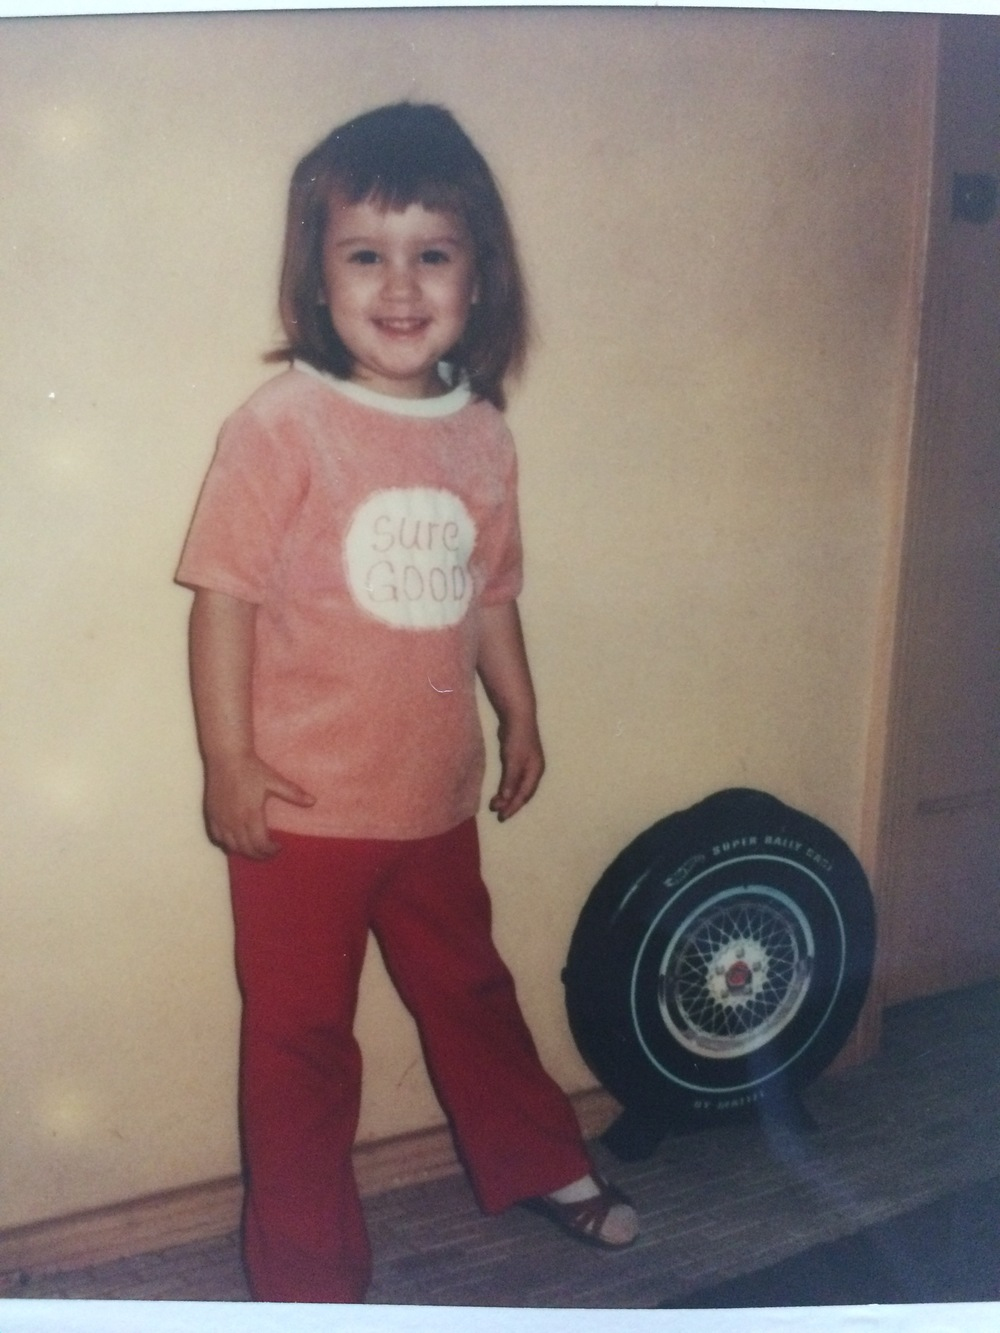 Me and my Hot Wheels. Yeah, dude. And socks with sandals, because eighties.